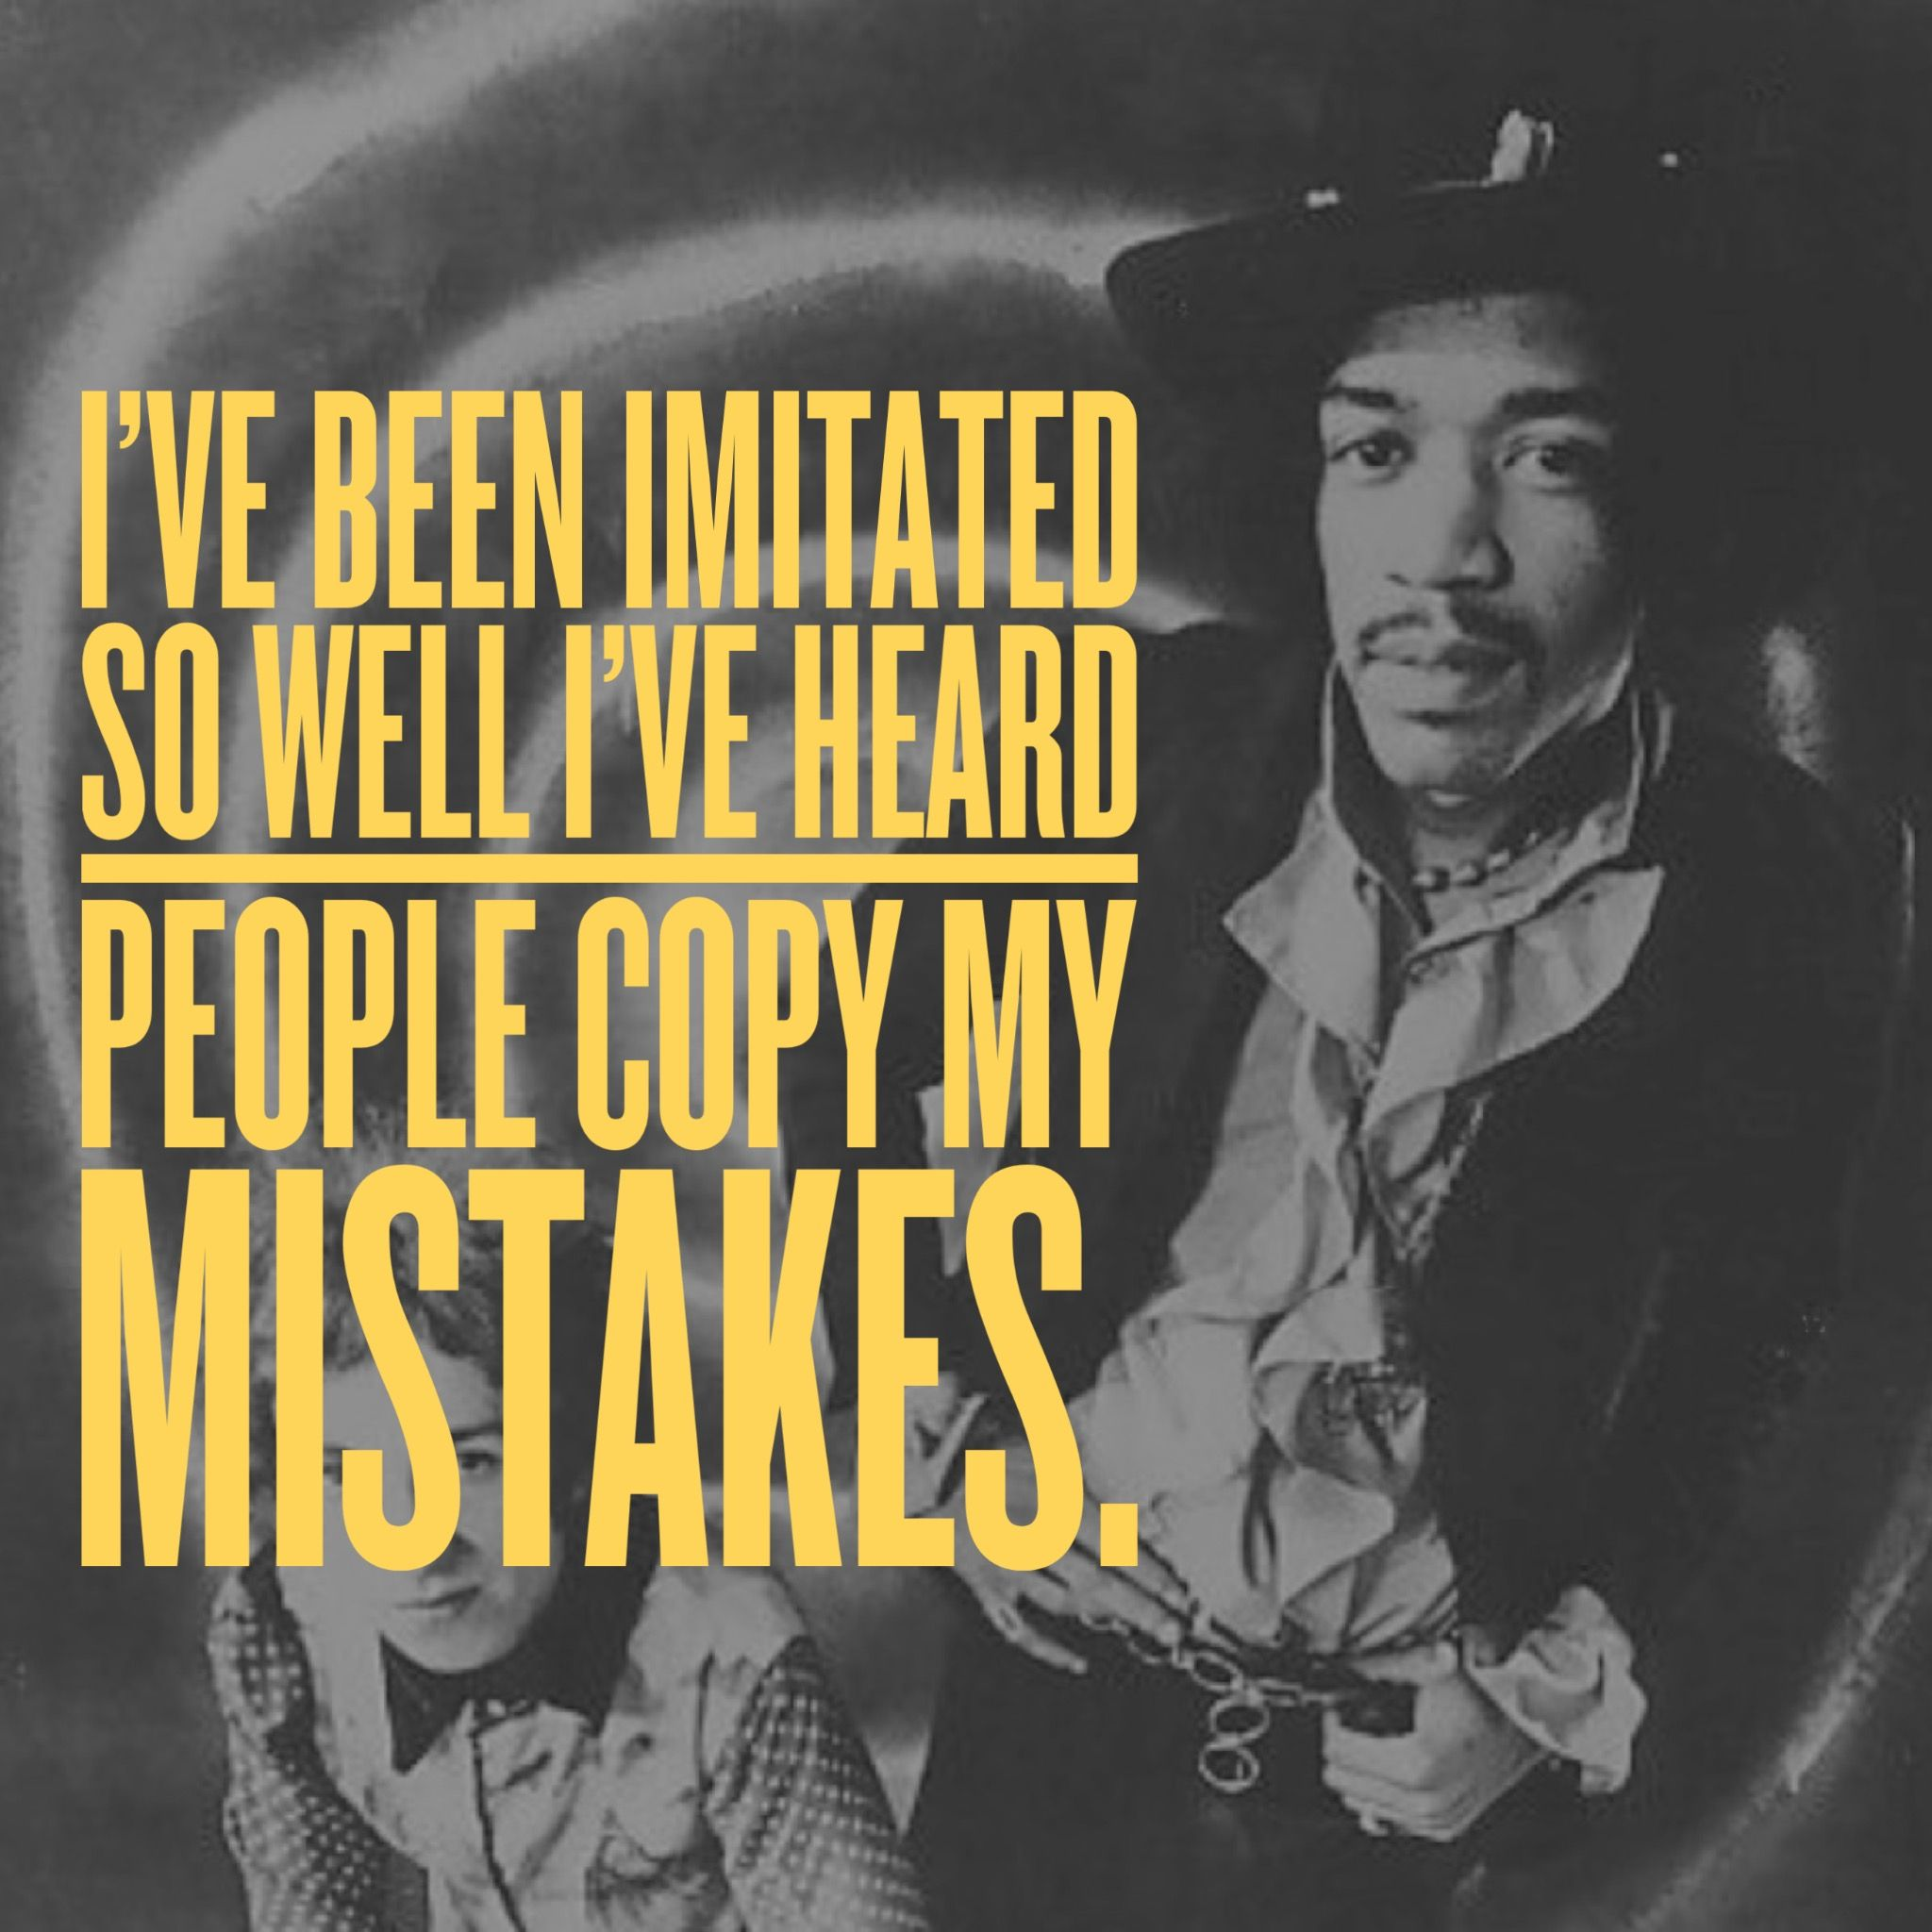 Jimi Hendrix Quotes Mesmerizing Image Result For Jimi Hendrix Quotes  Jimi  Pinterest  Jimi